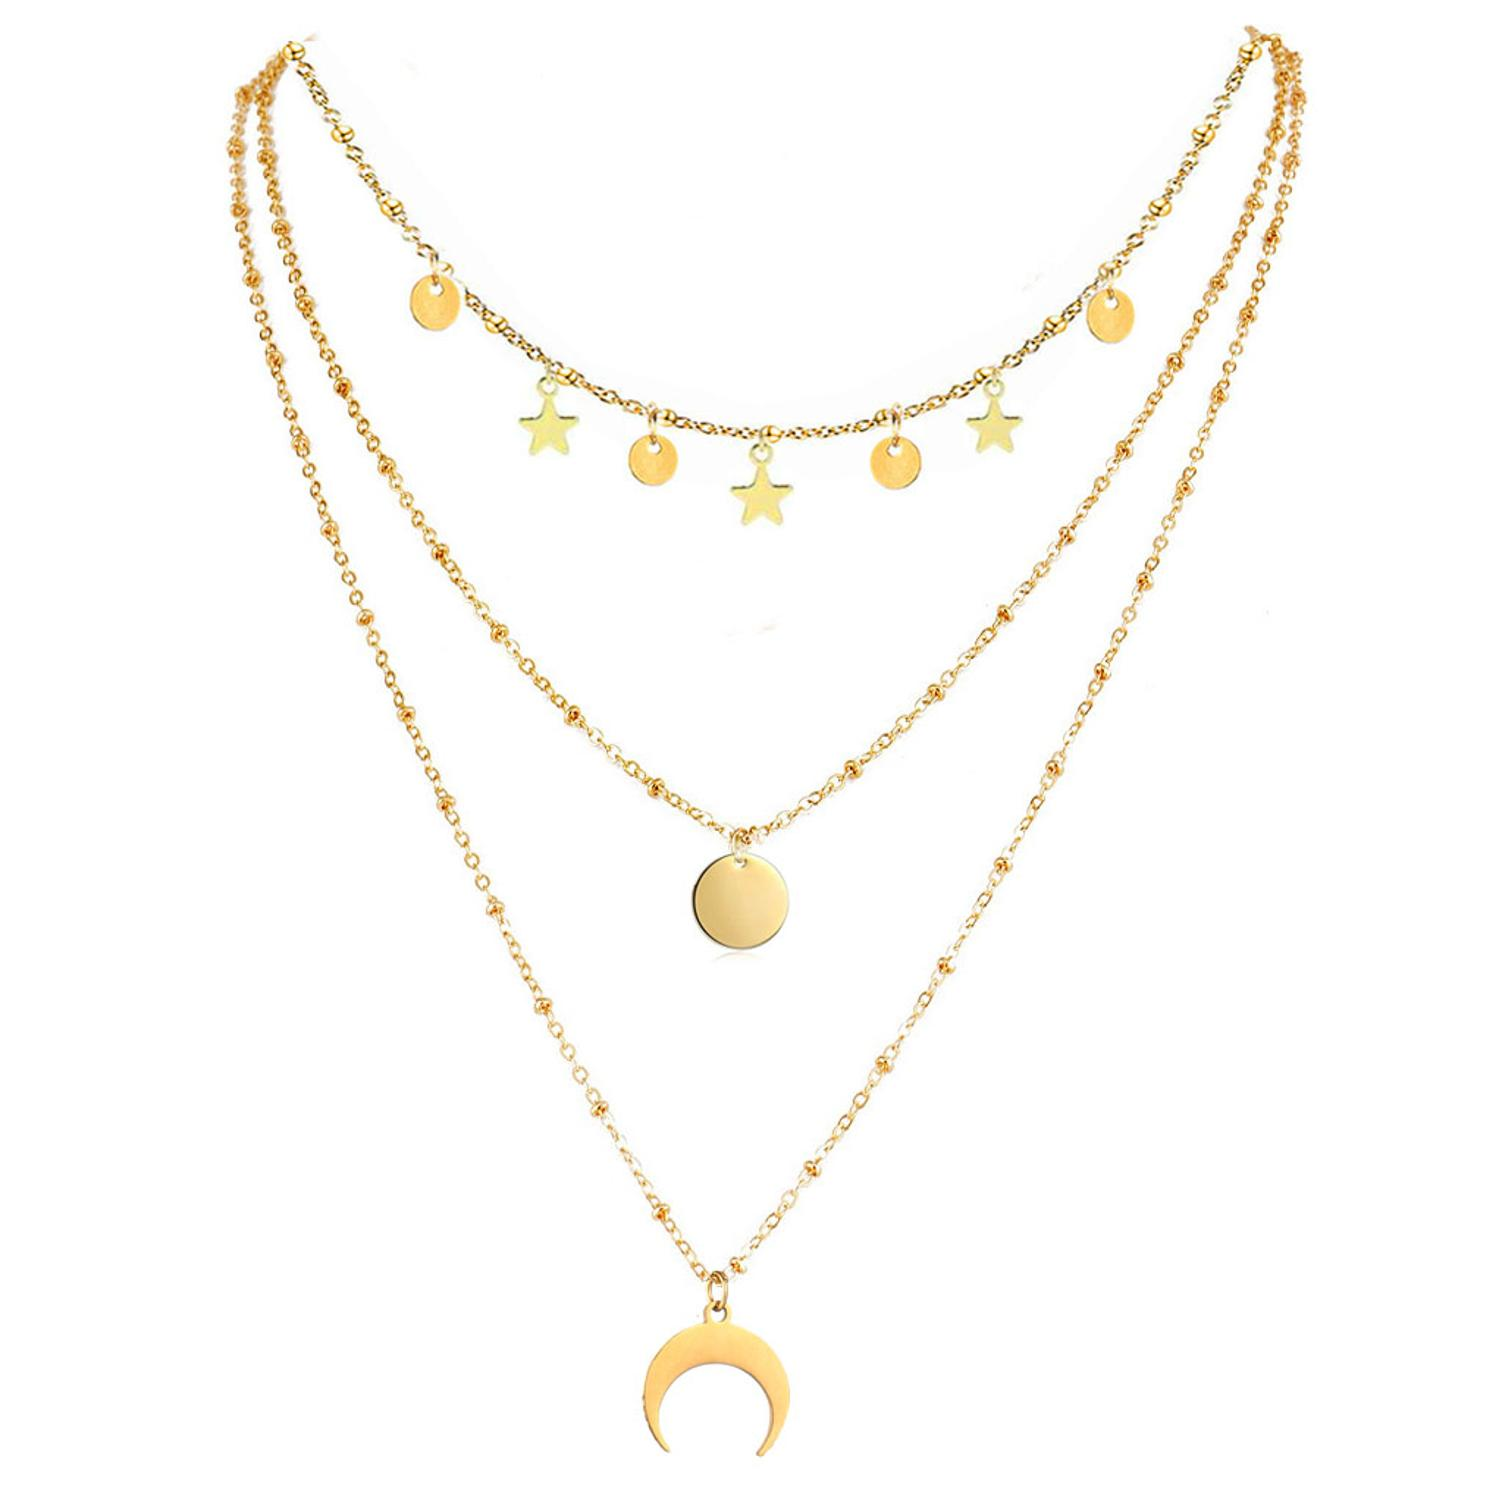 3 Layer Chains Stainless Steel Star Choker For Woman Girls Multilayer Horn Round Disc Moon Tassel Pendant Necklaces